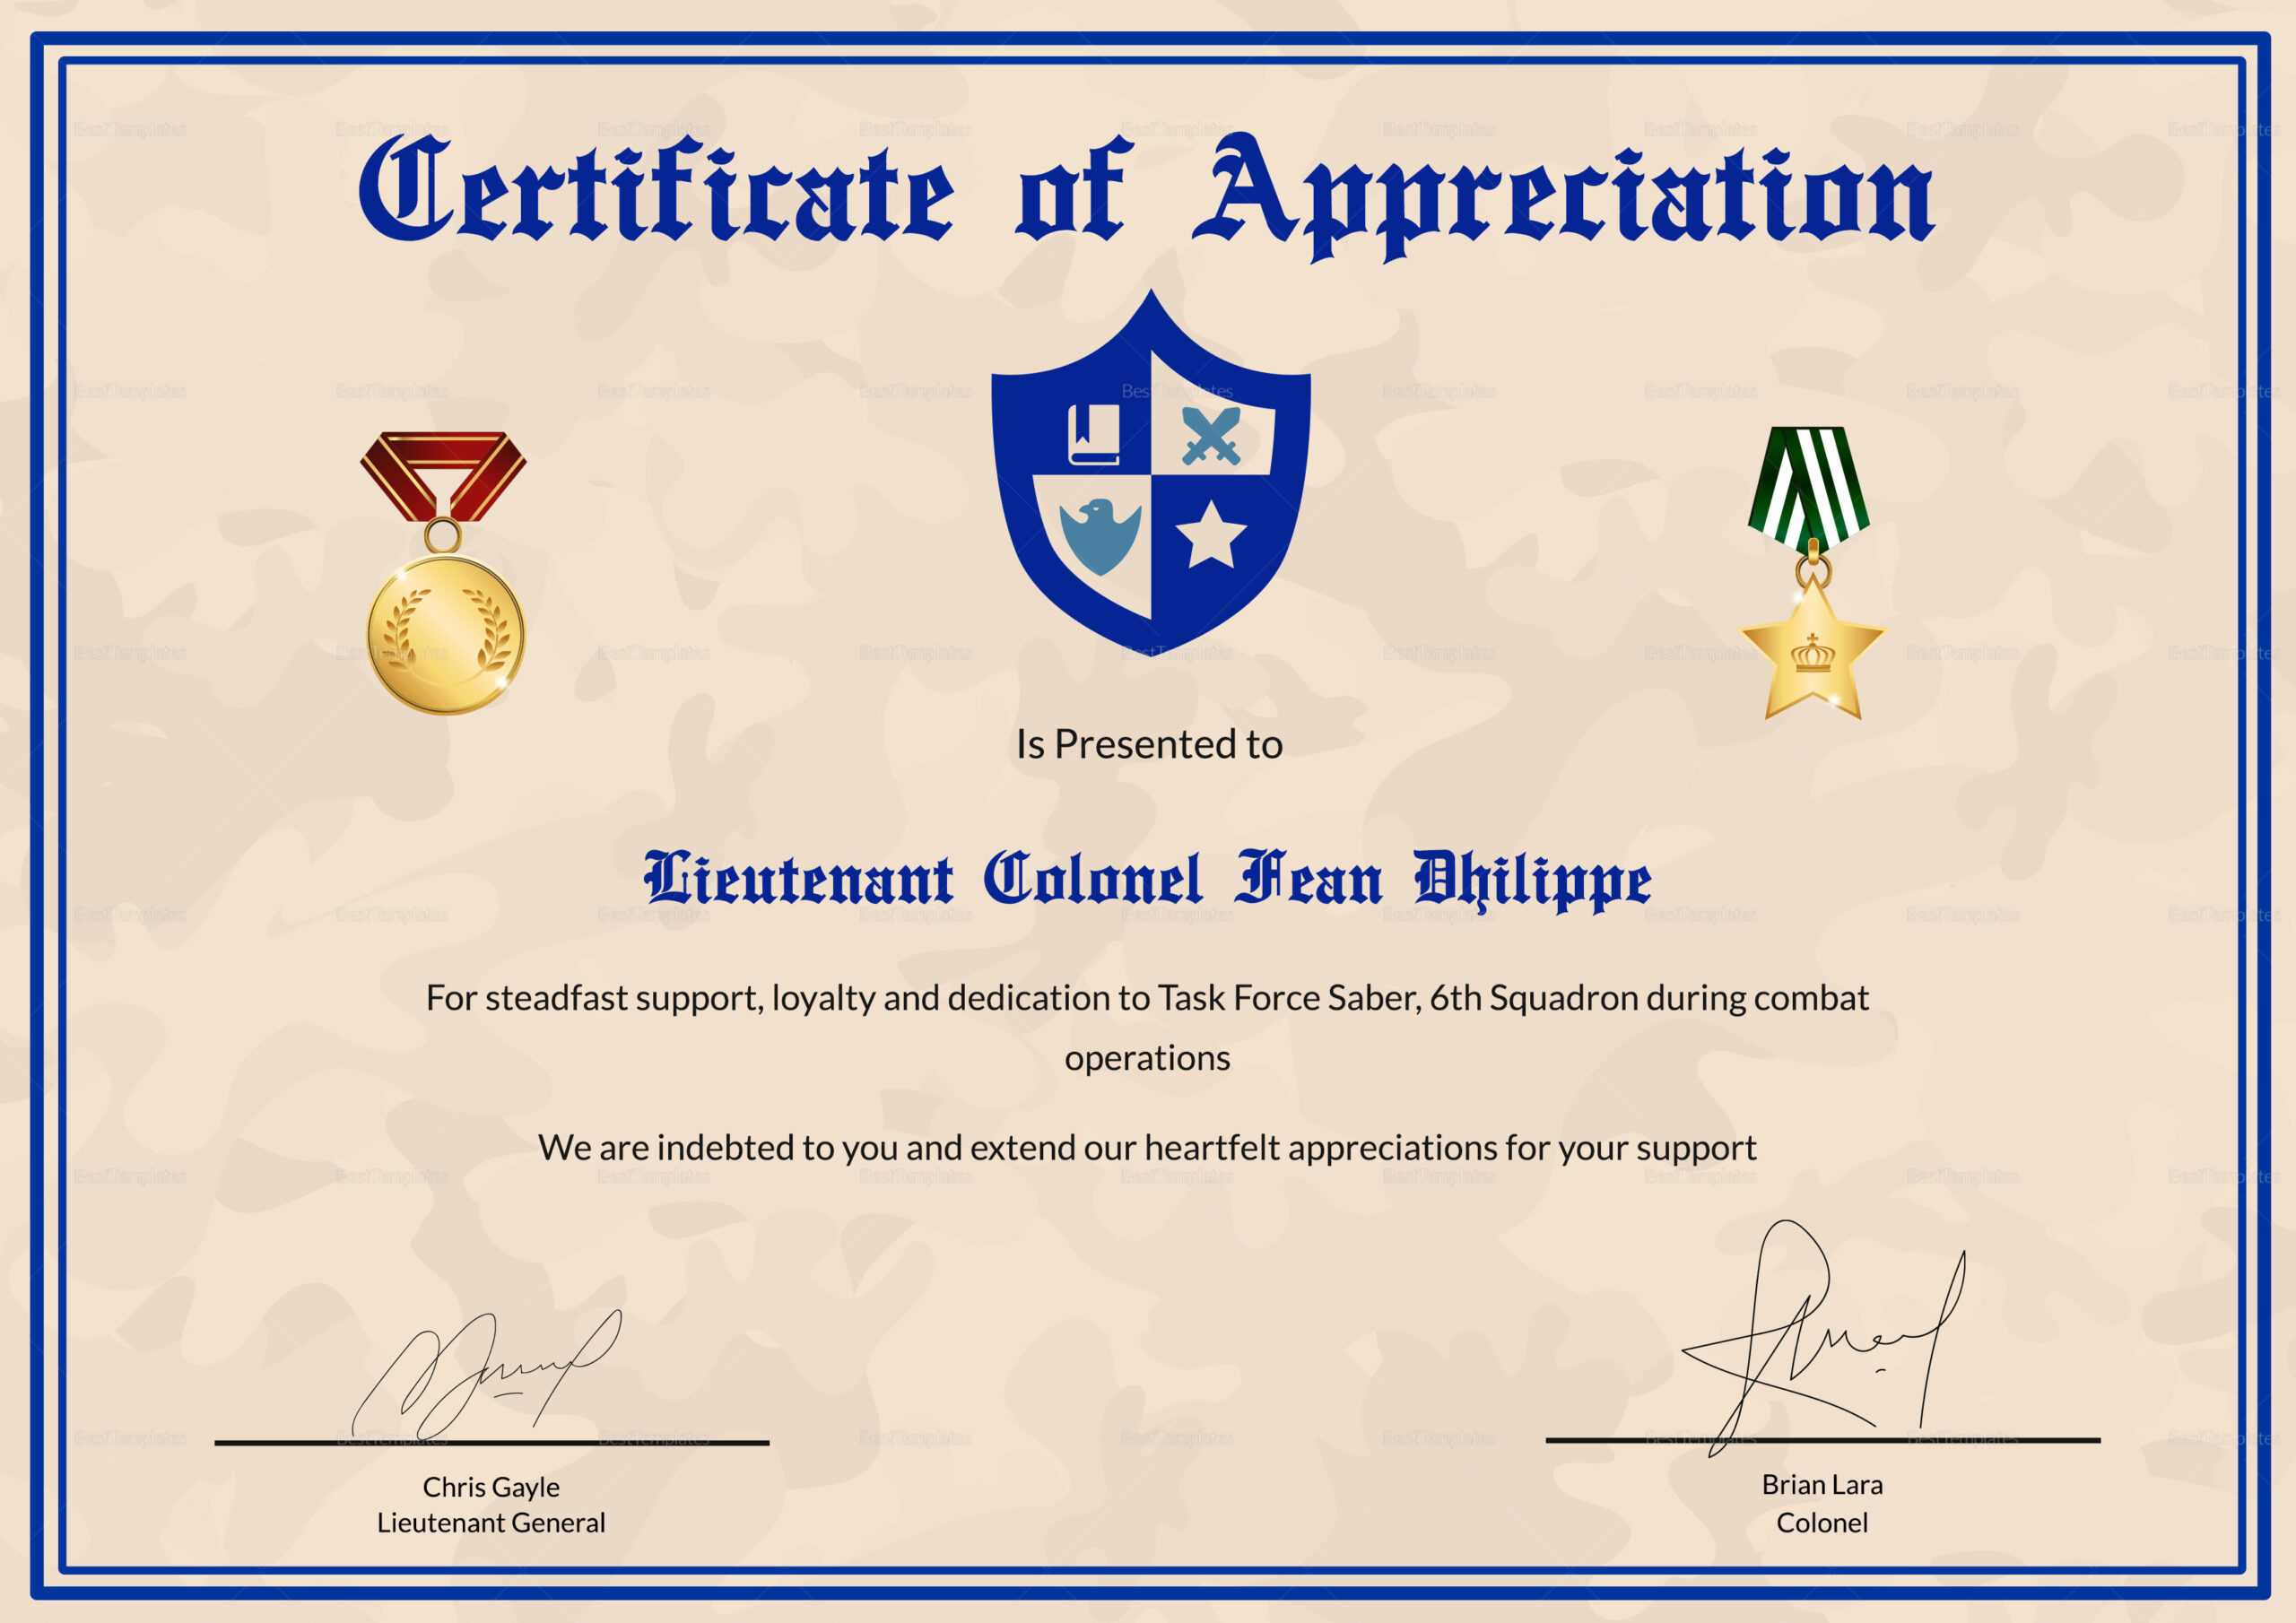 Army Certificate Of Appreciation Template Pertaining To Army Certificate Of Achievement Template